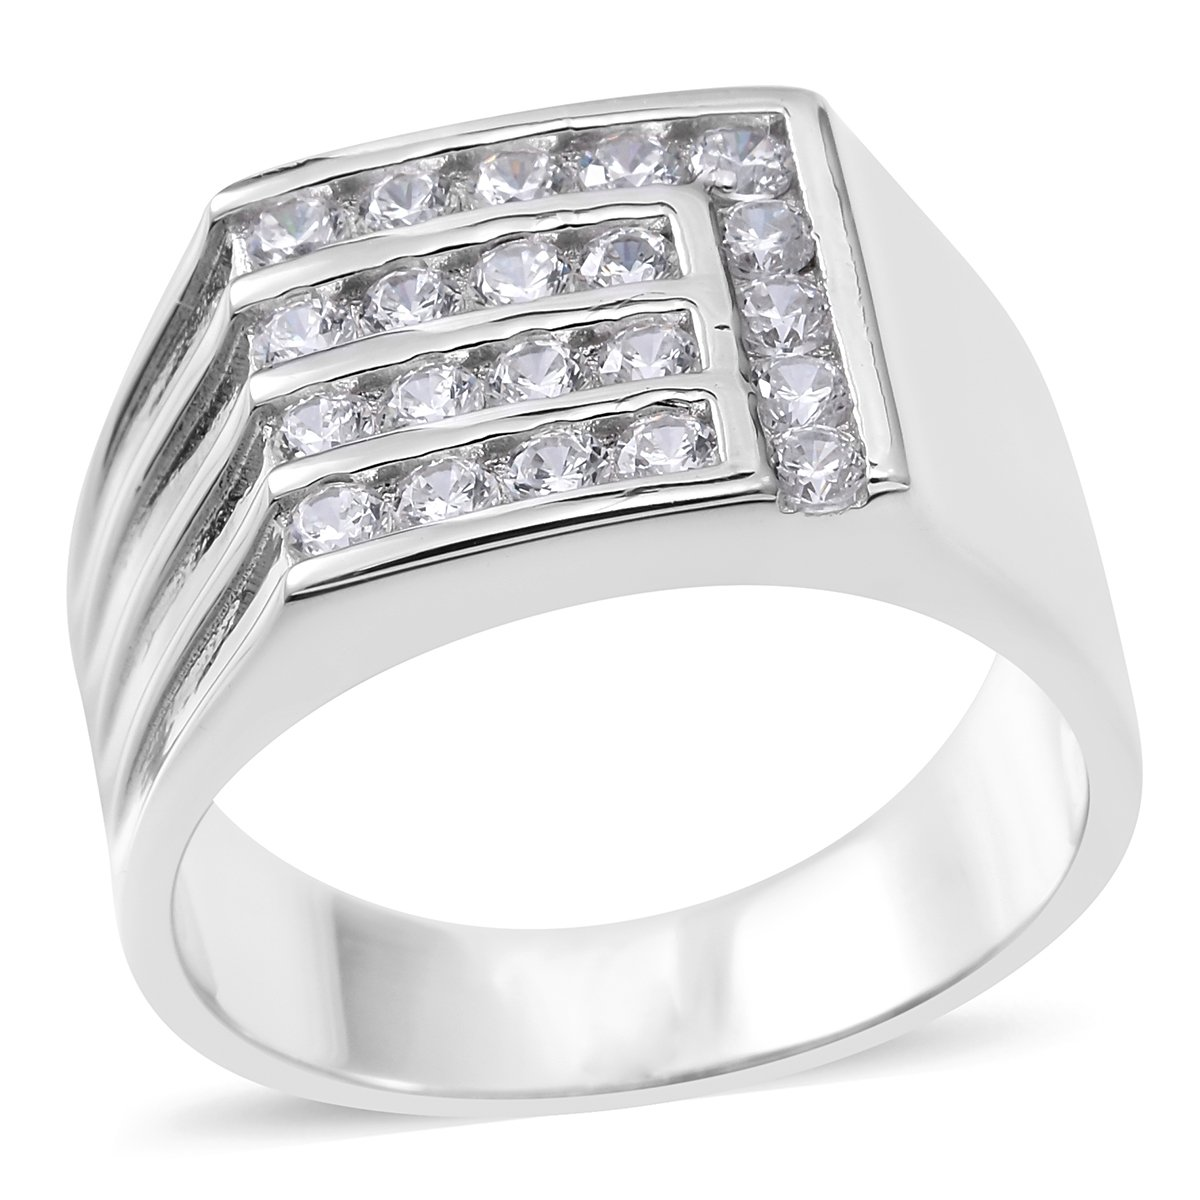 925 Sterling Silver 0.7 Cttw Round Cubic Zirconia Men's Fathers Day Gift Ring Size 10